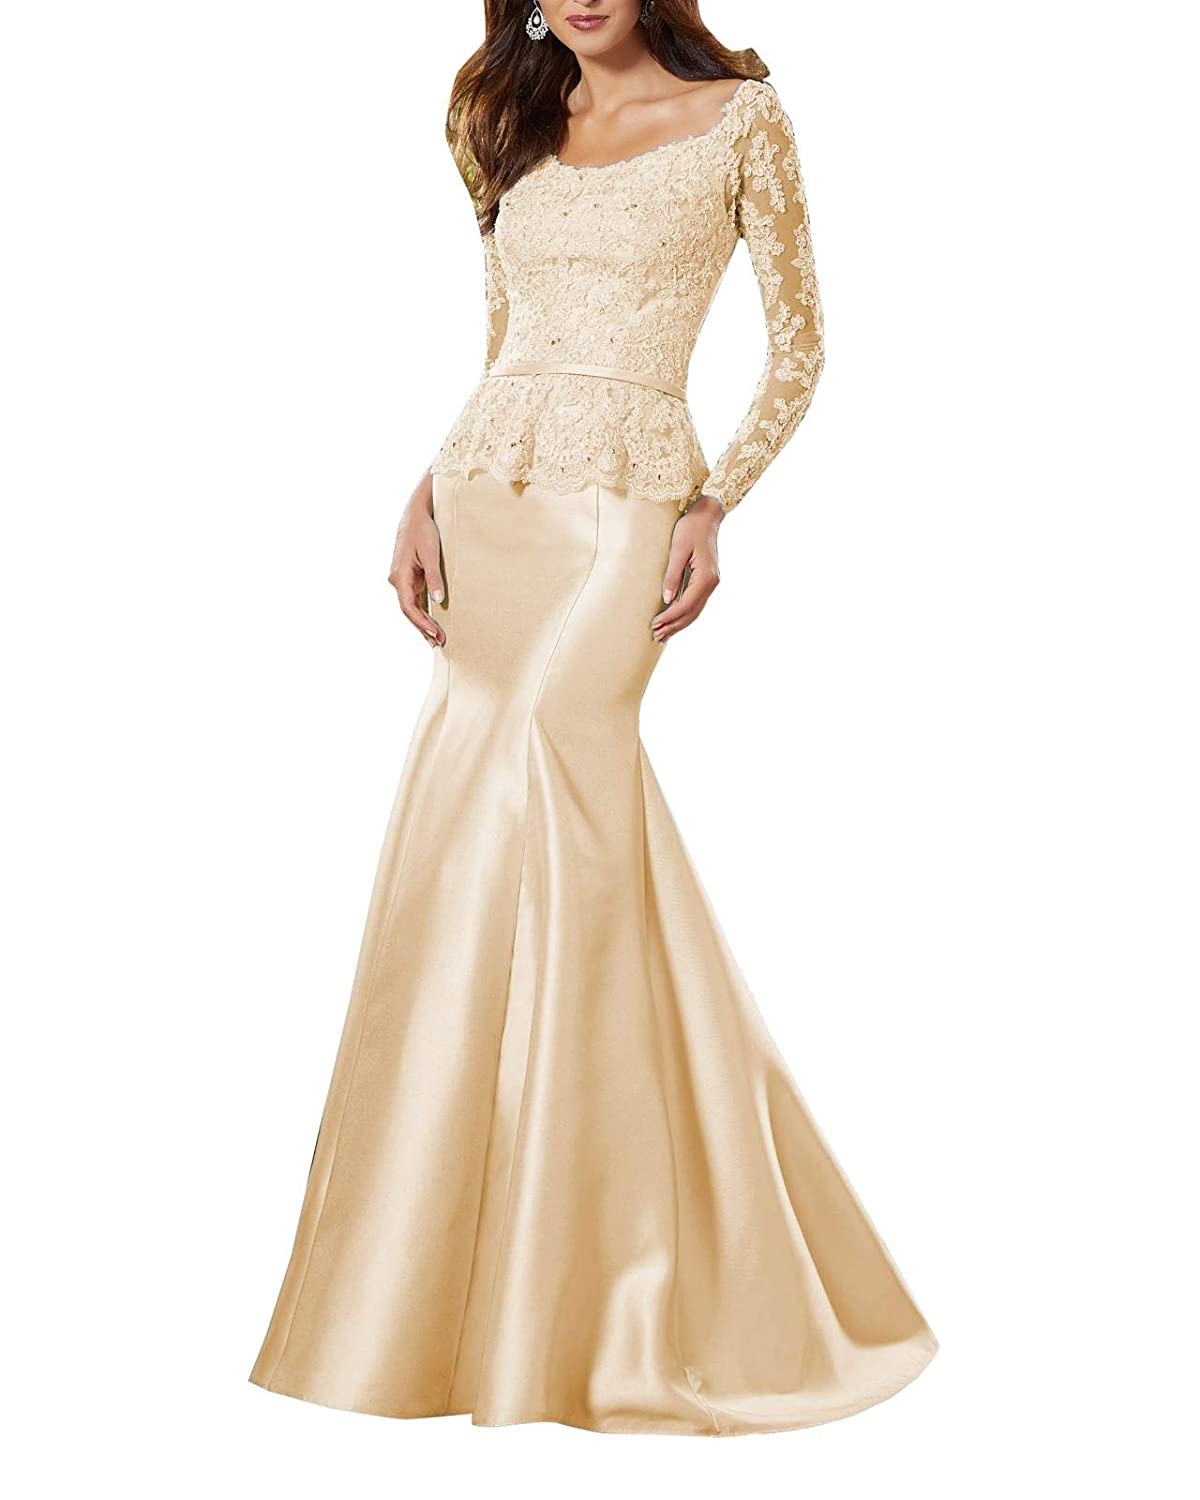 Champagne Wanshaqin Women's Heavy Beaded Lace Formal Evening Gown Stunning Silk Party Dress with Empire Waist